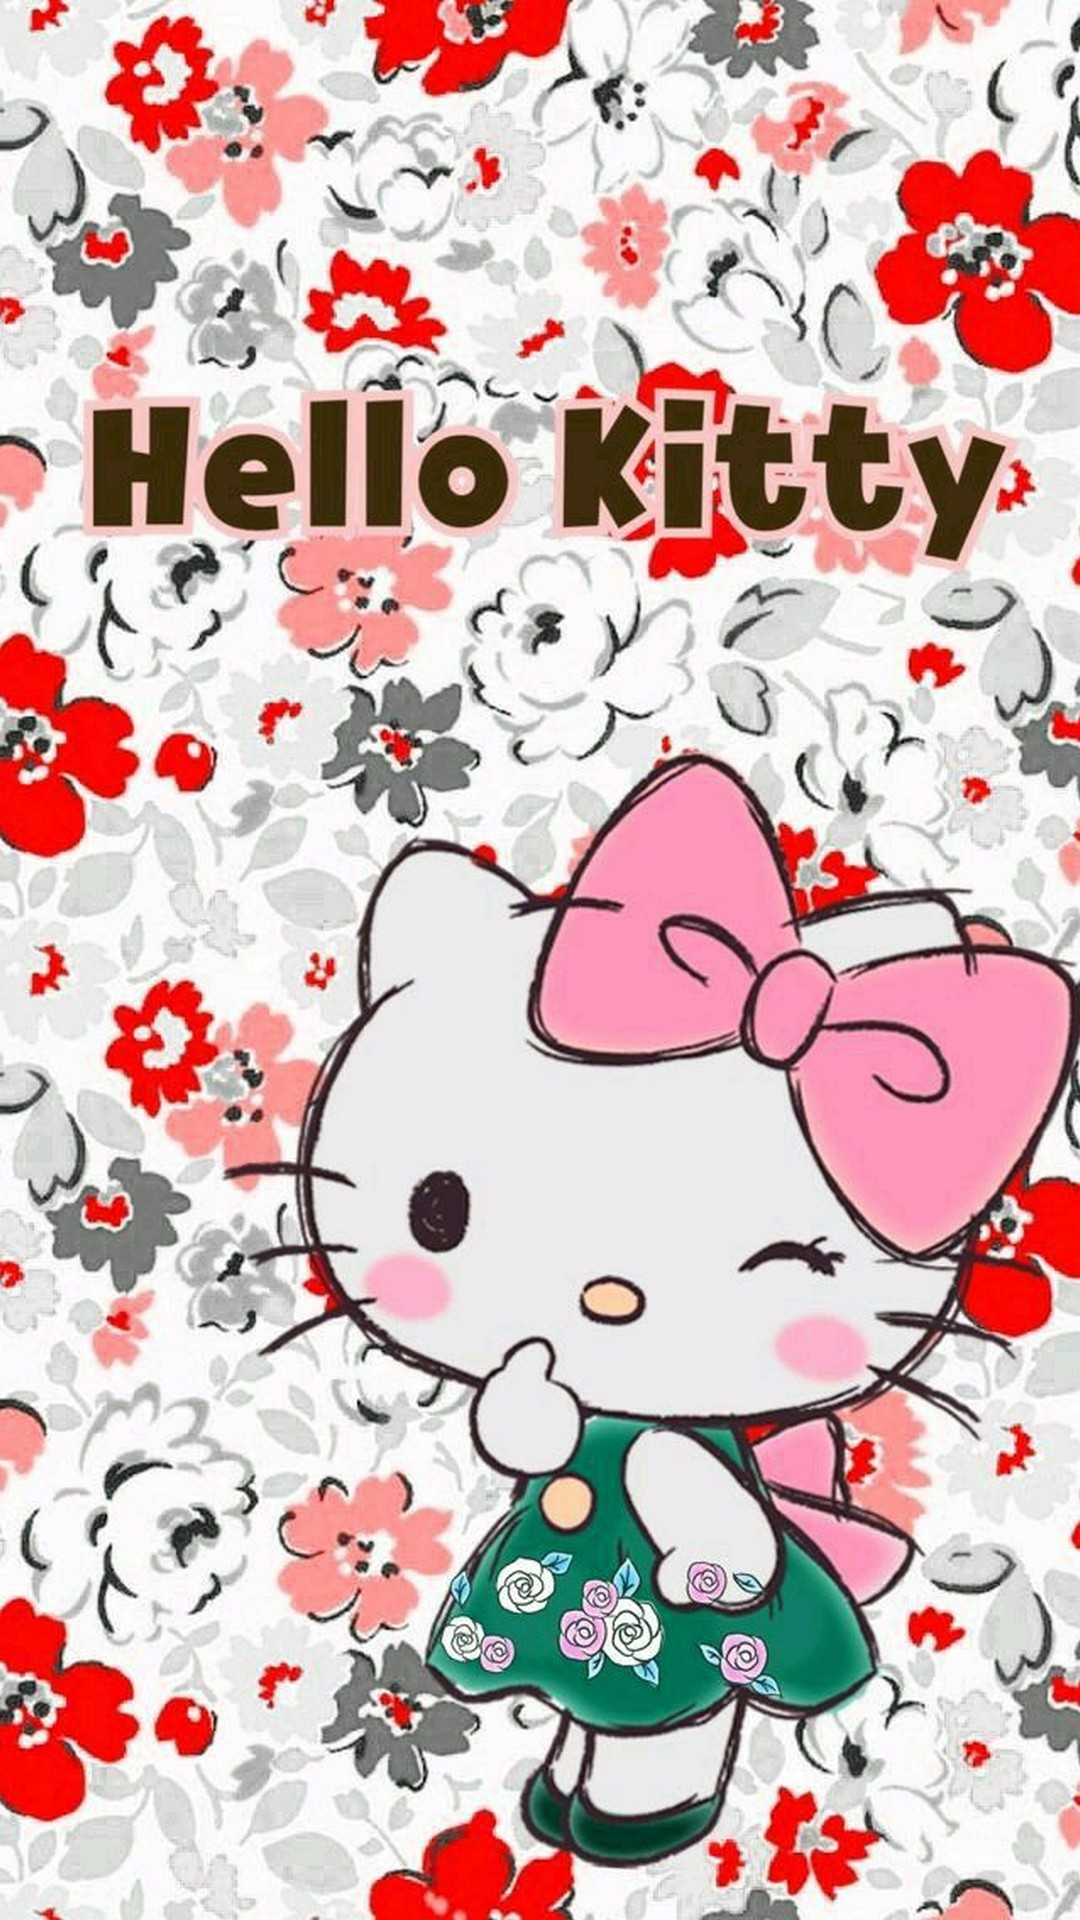 52 ] Wallpapers Kitty On WallpaperSafari